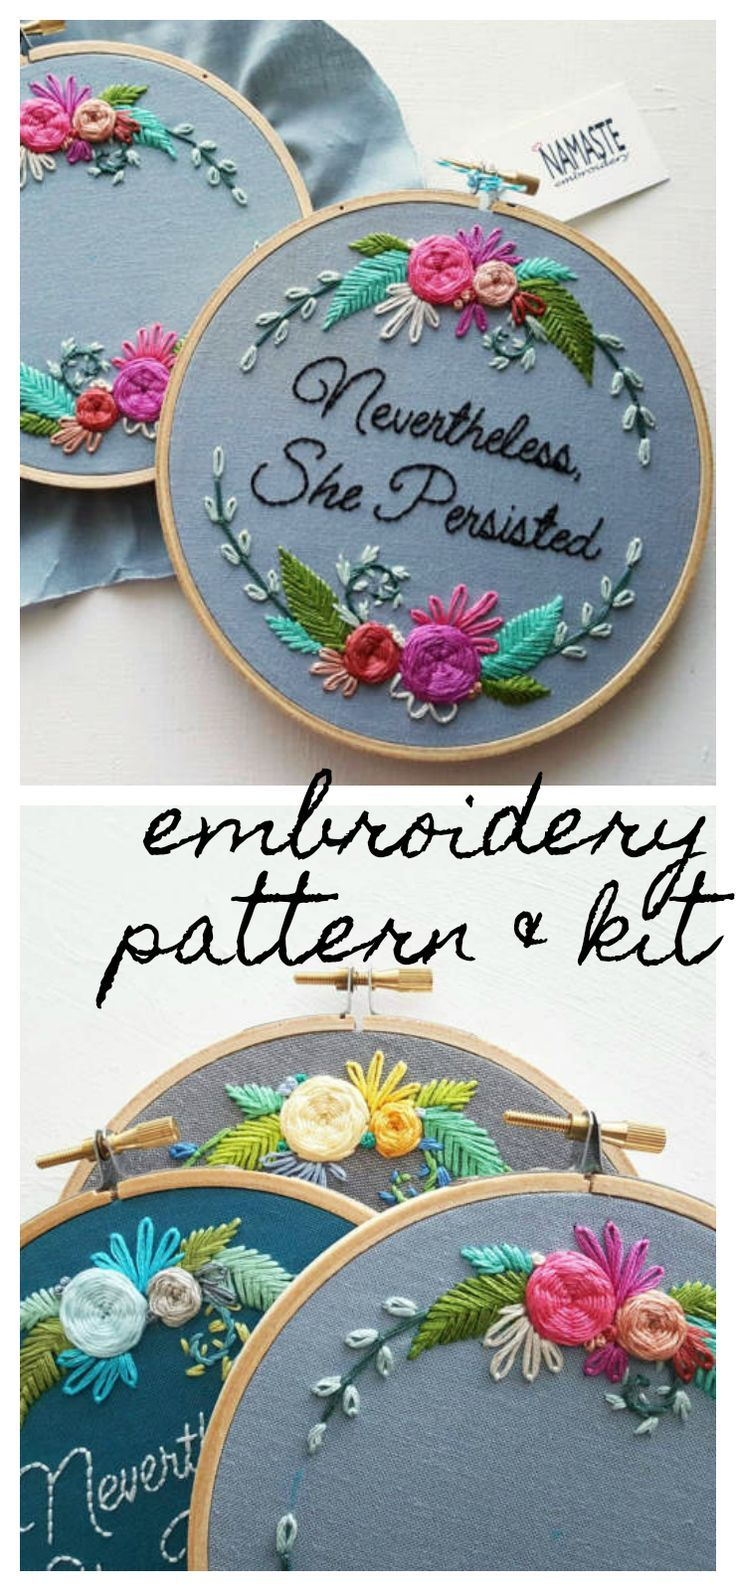 This is a beautiful, feminist embroidery pattern that comes sold as an  embroidery craft kit. Affiliate link to where you can buy.